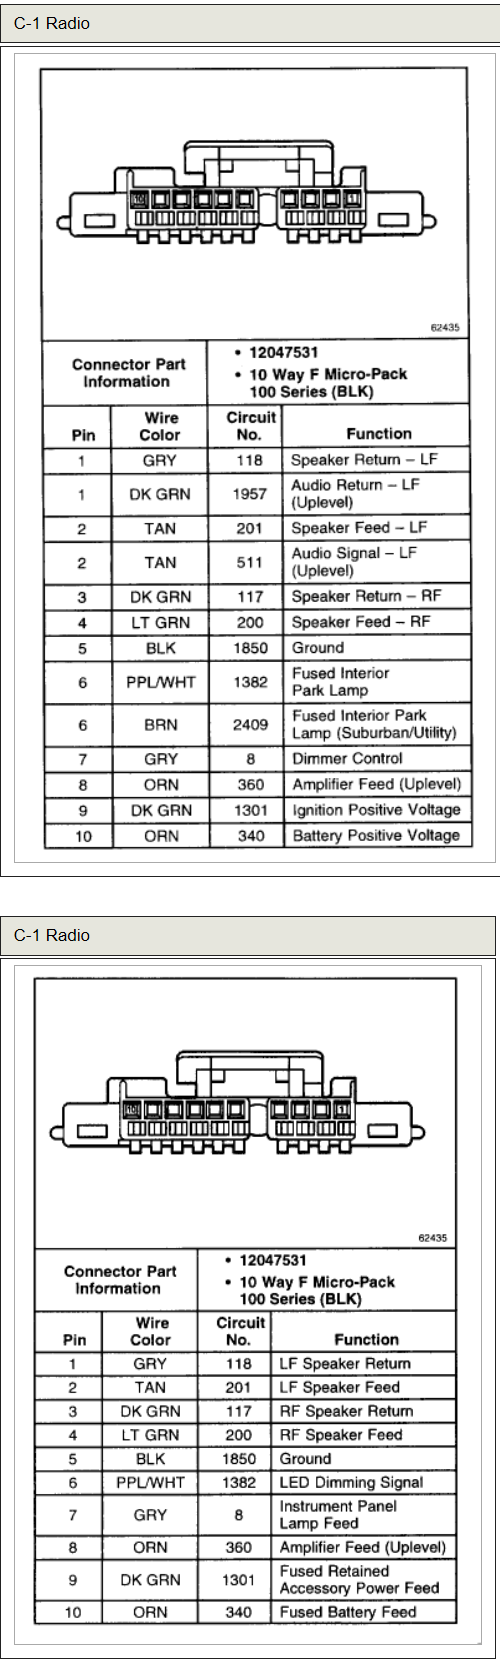 Chevrolet Car Radio Stereo Audio Wiring Diagram Autoradio Connector 2005 Chevy Aveo Fuse Box Wire Installation Schematic Schema Esquema De Conexiones Anschlusskammern Konektor